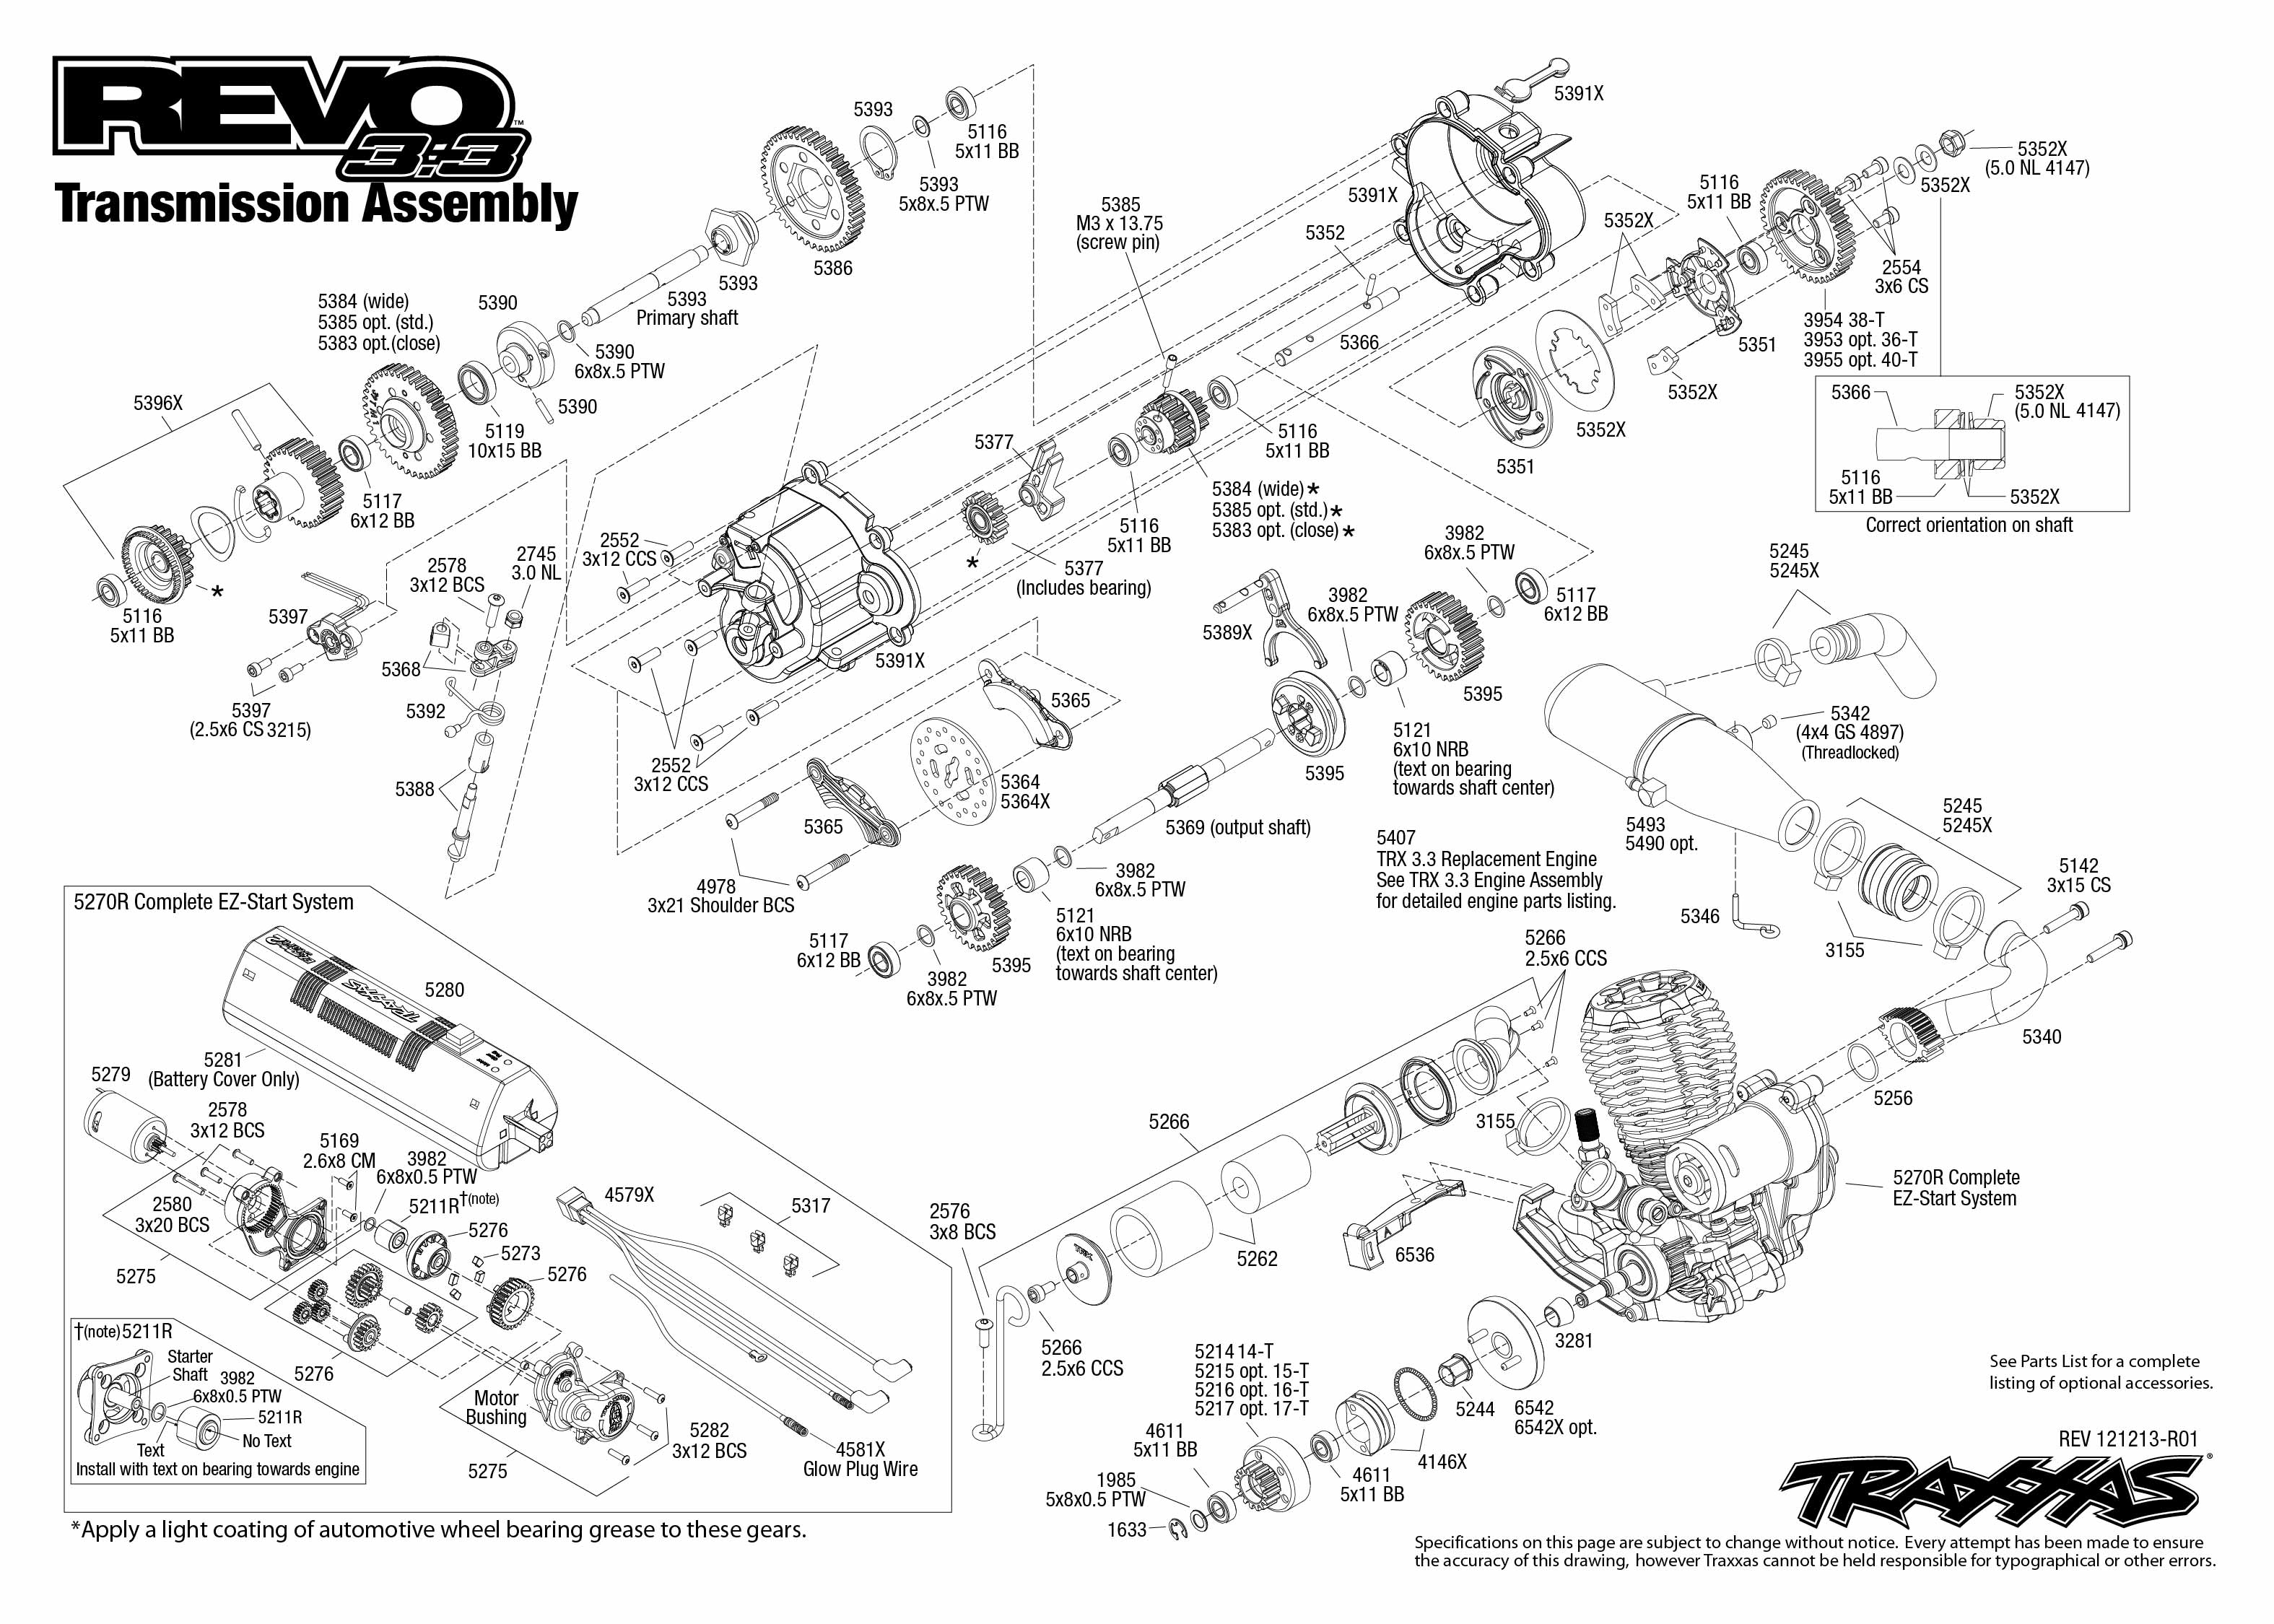 Traxxas Nitro Sport Parts Diagram Stampede Vxl Monster Jam Replicas 3602 Revo Transmission E Brushless Edition 3150x2250